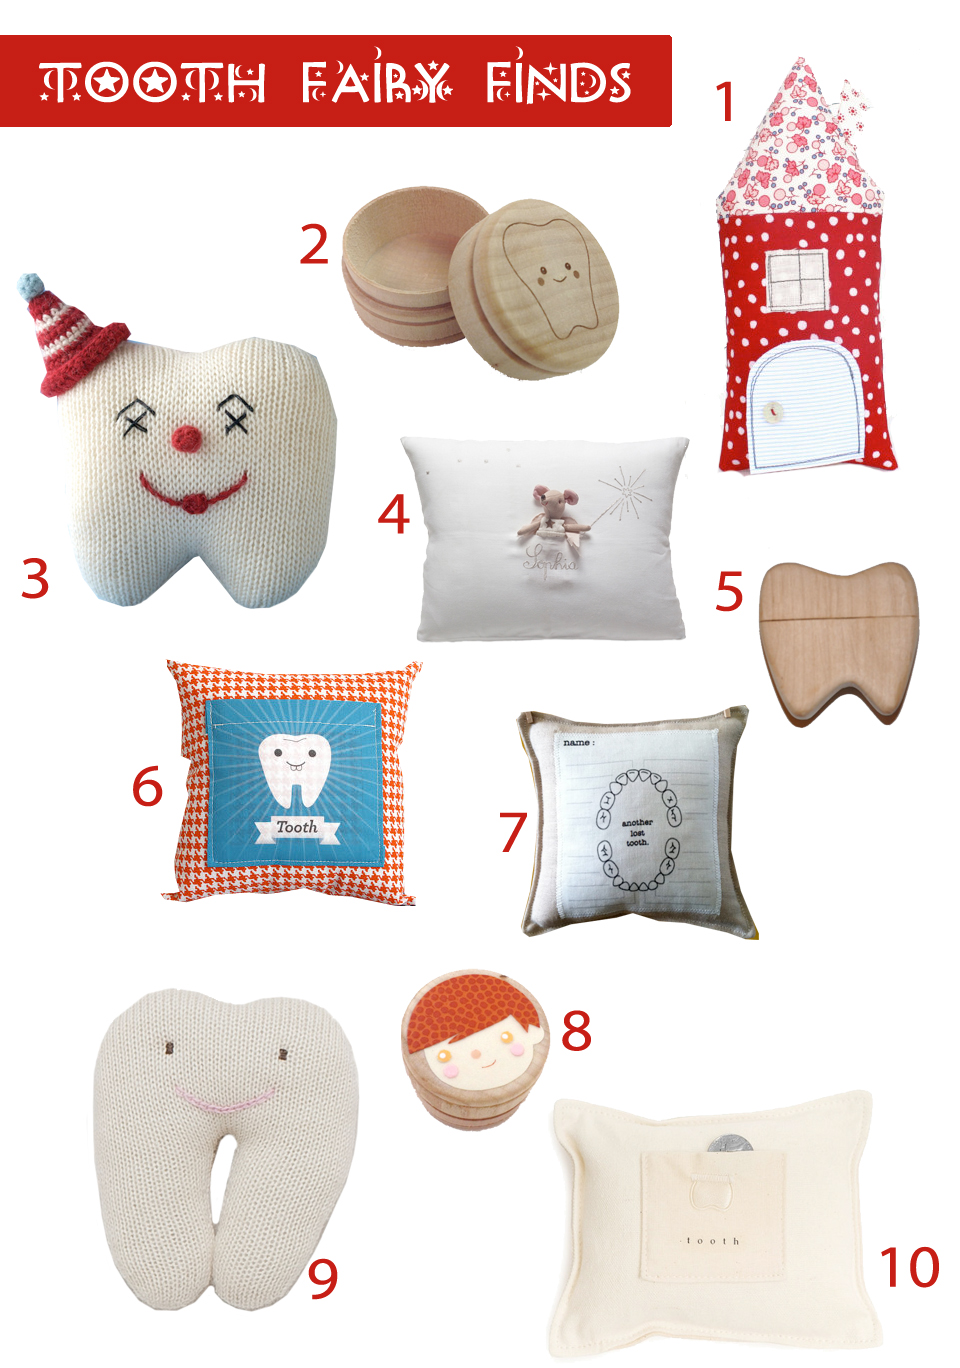 Top 10 tooth fairy finds